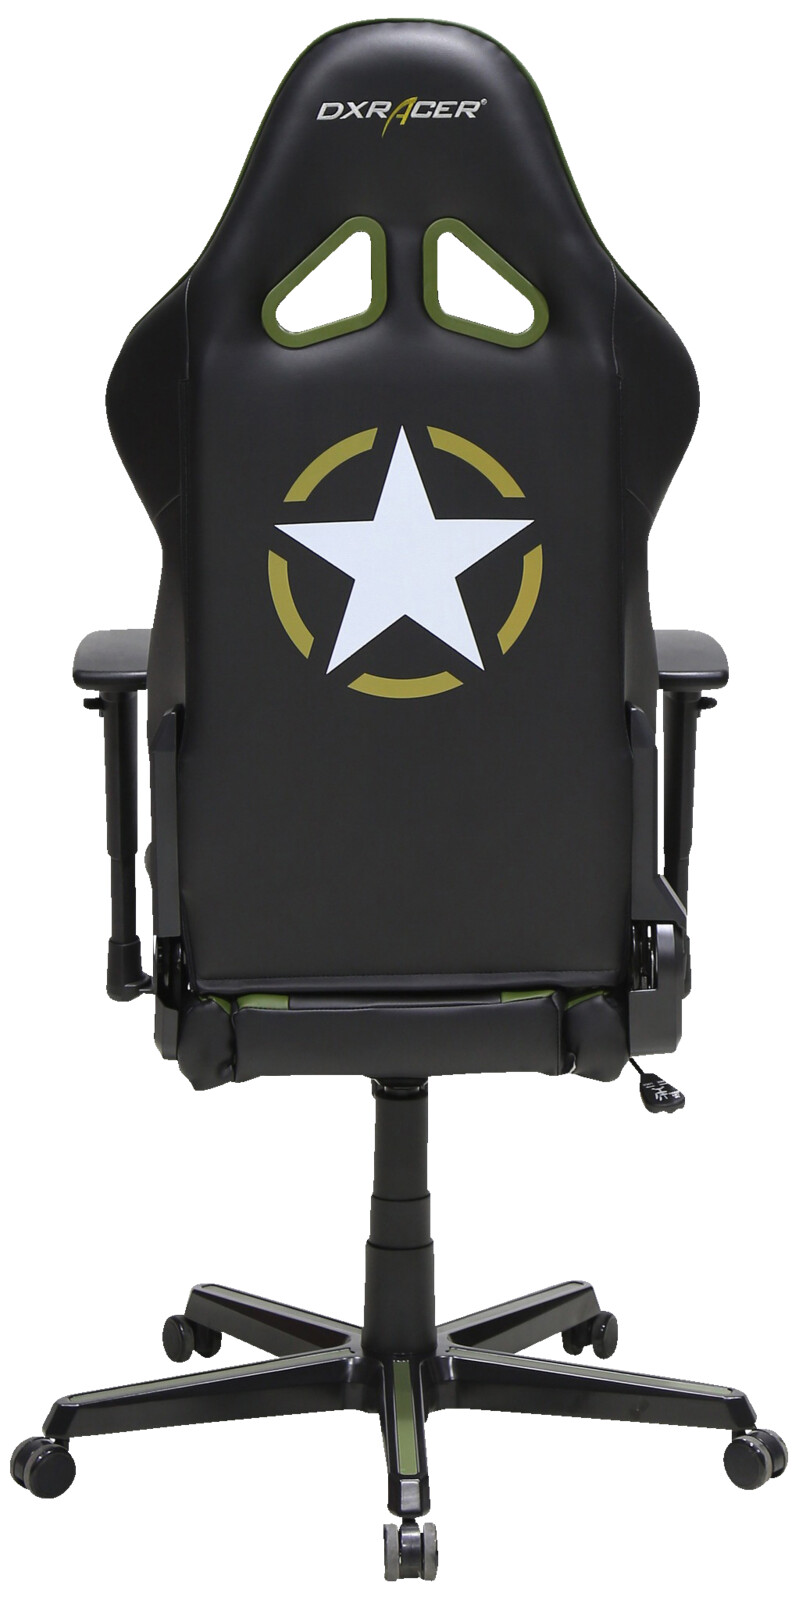 Dxracer Sessel Details Zu Dxracer Racing R52 Gaming Chair Call Of Duty Wwii Edition Gaming Stuhl Schwarz